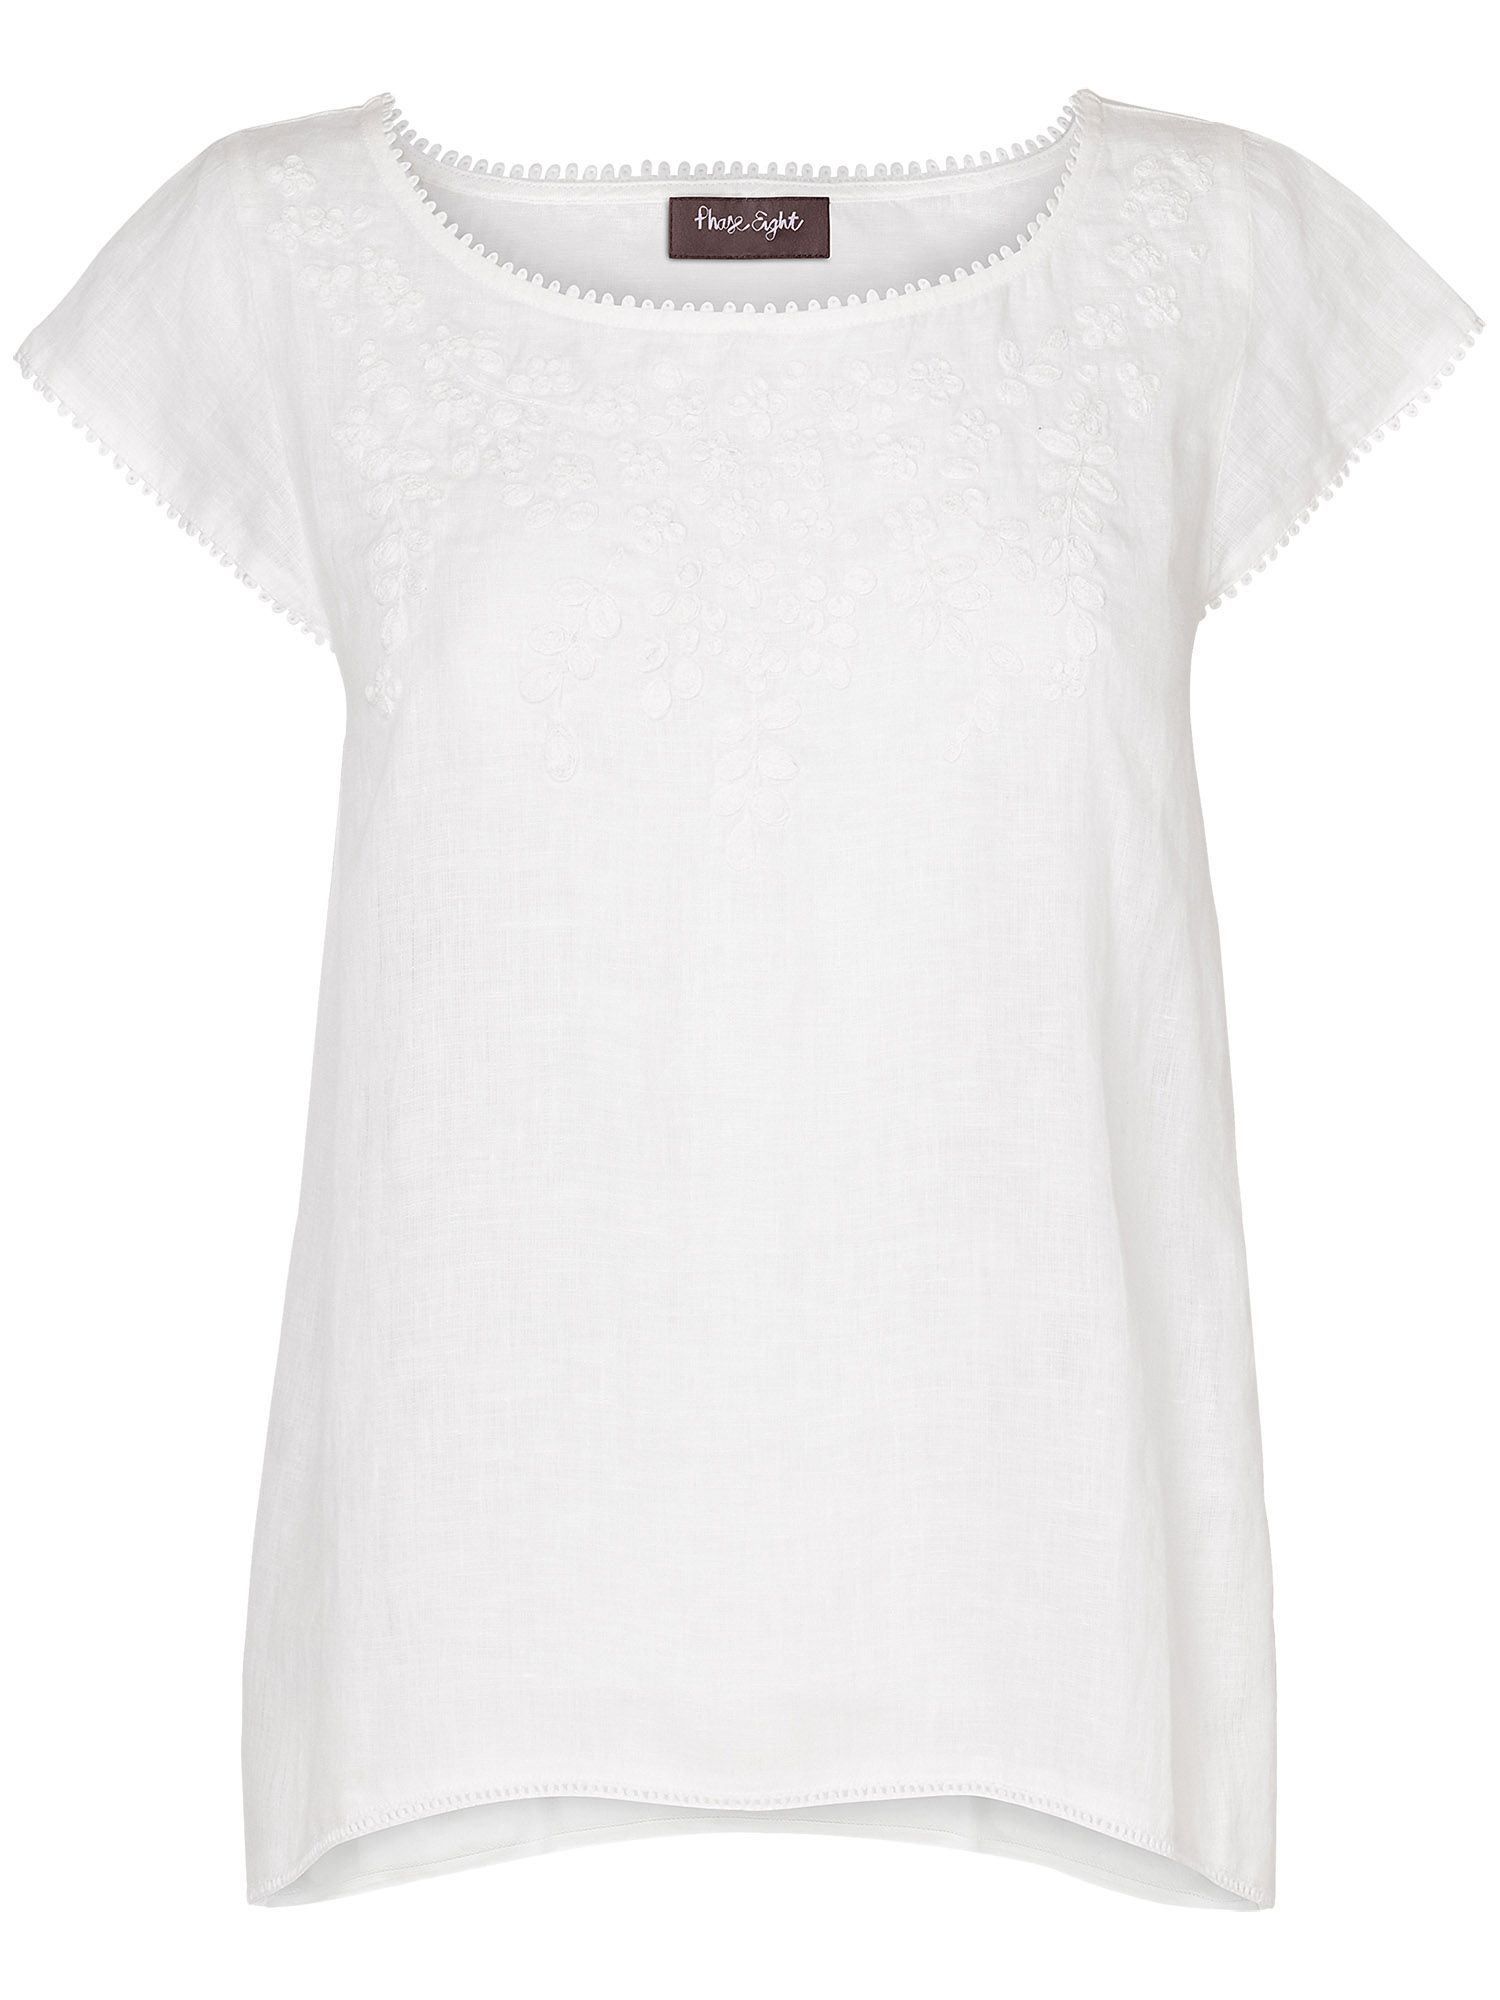 Annabelle embroidered top